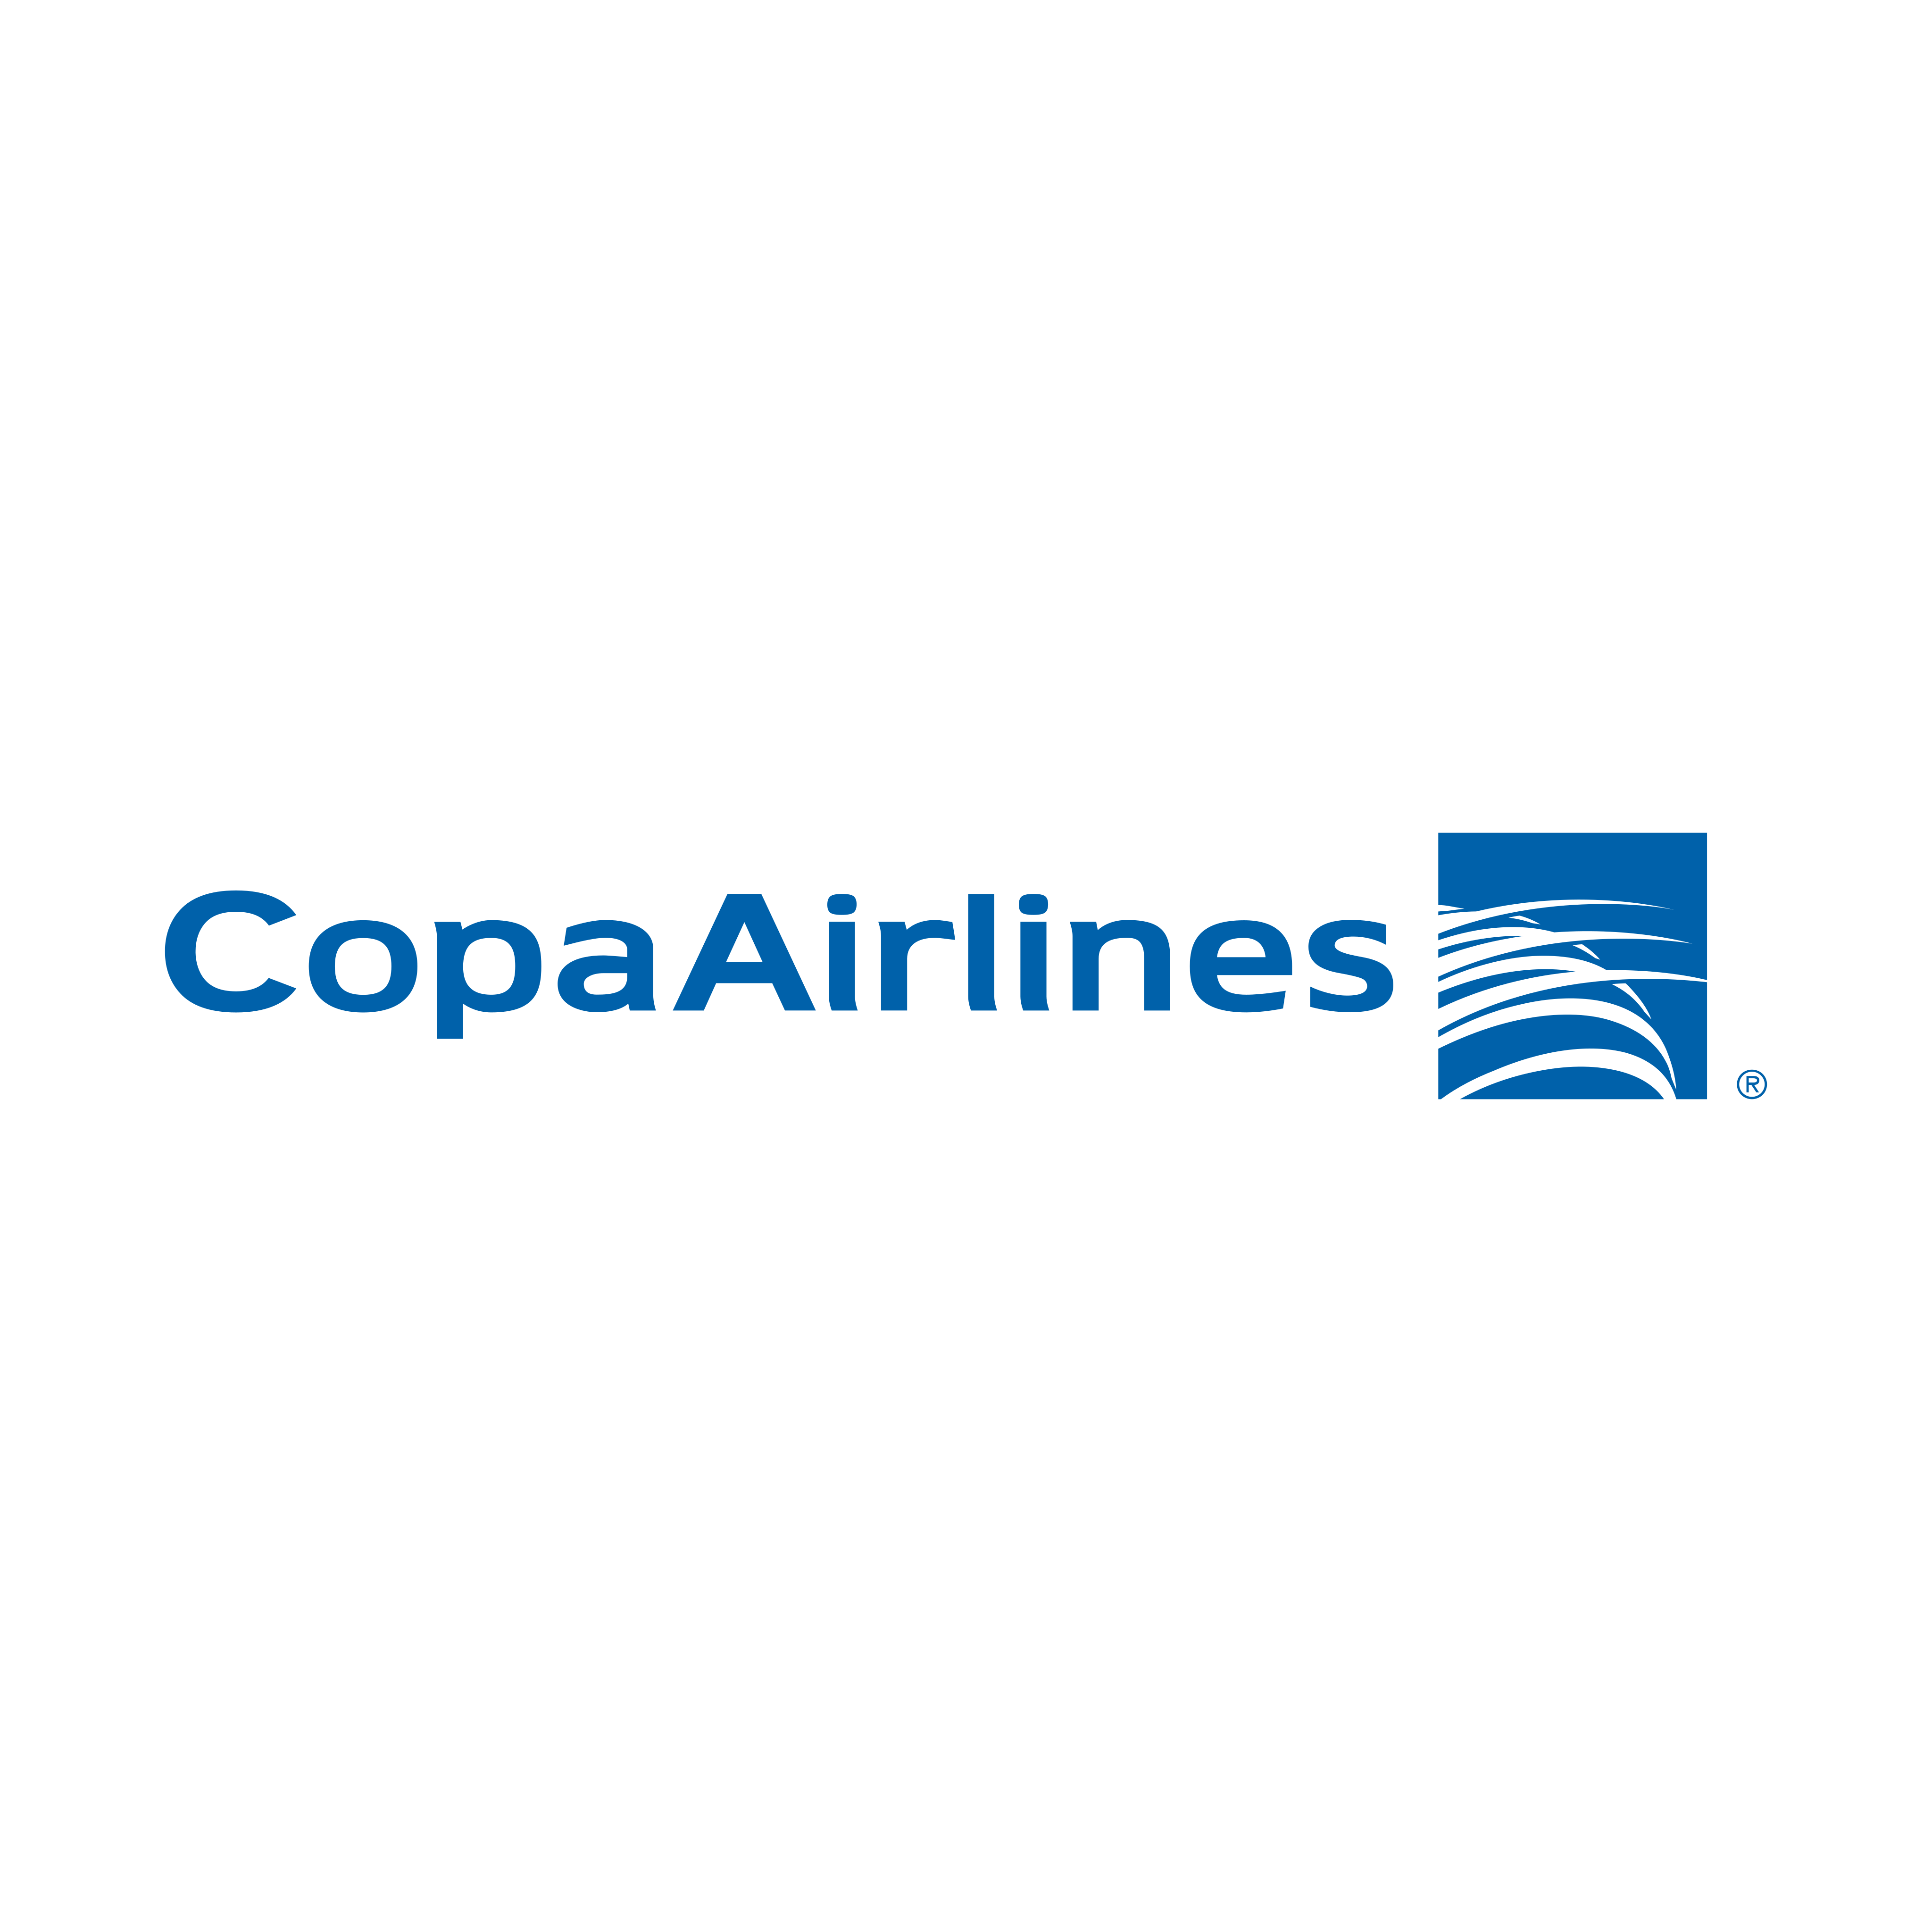 copa airlines logo 0 - Copa Airlines Logo